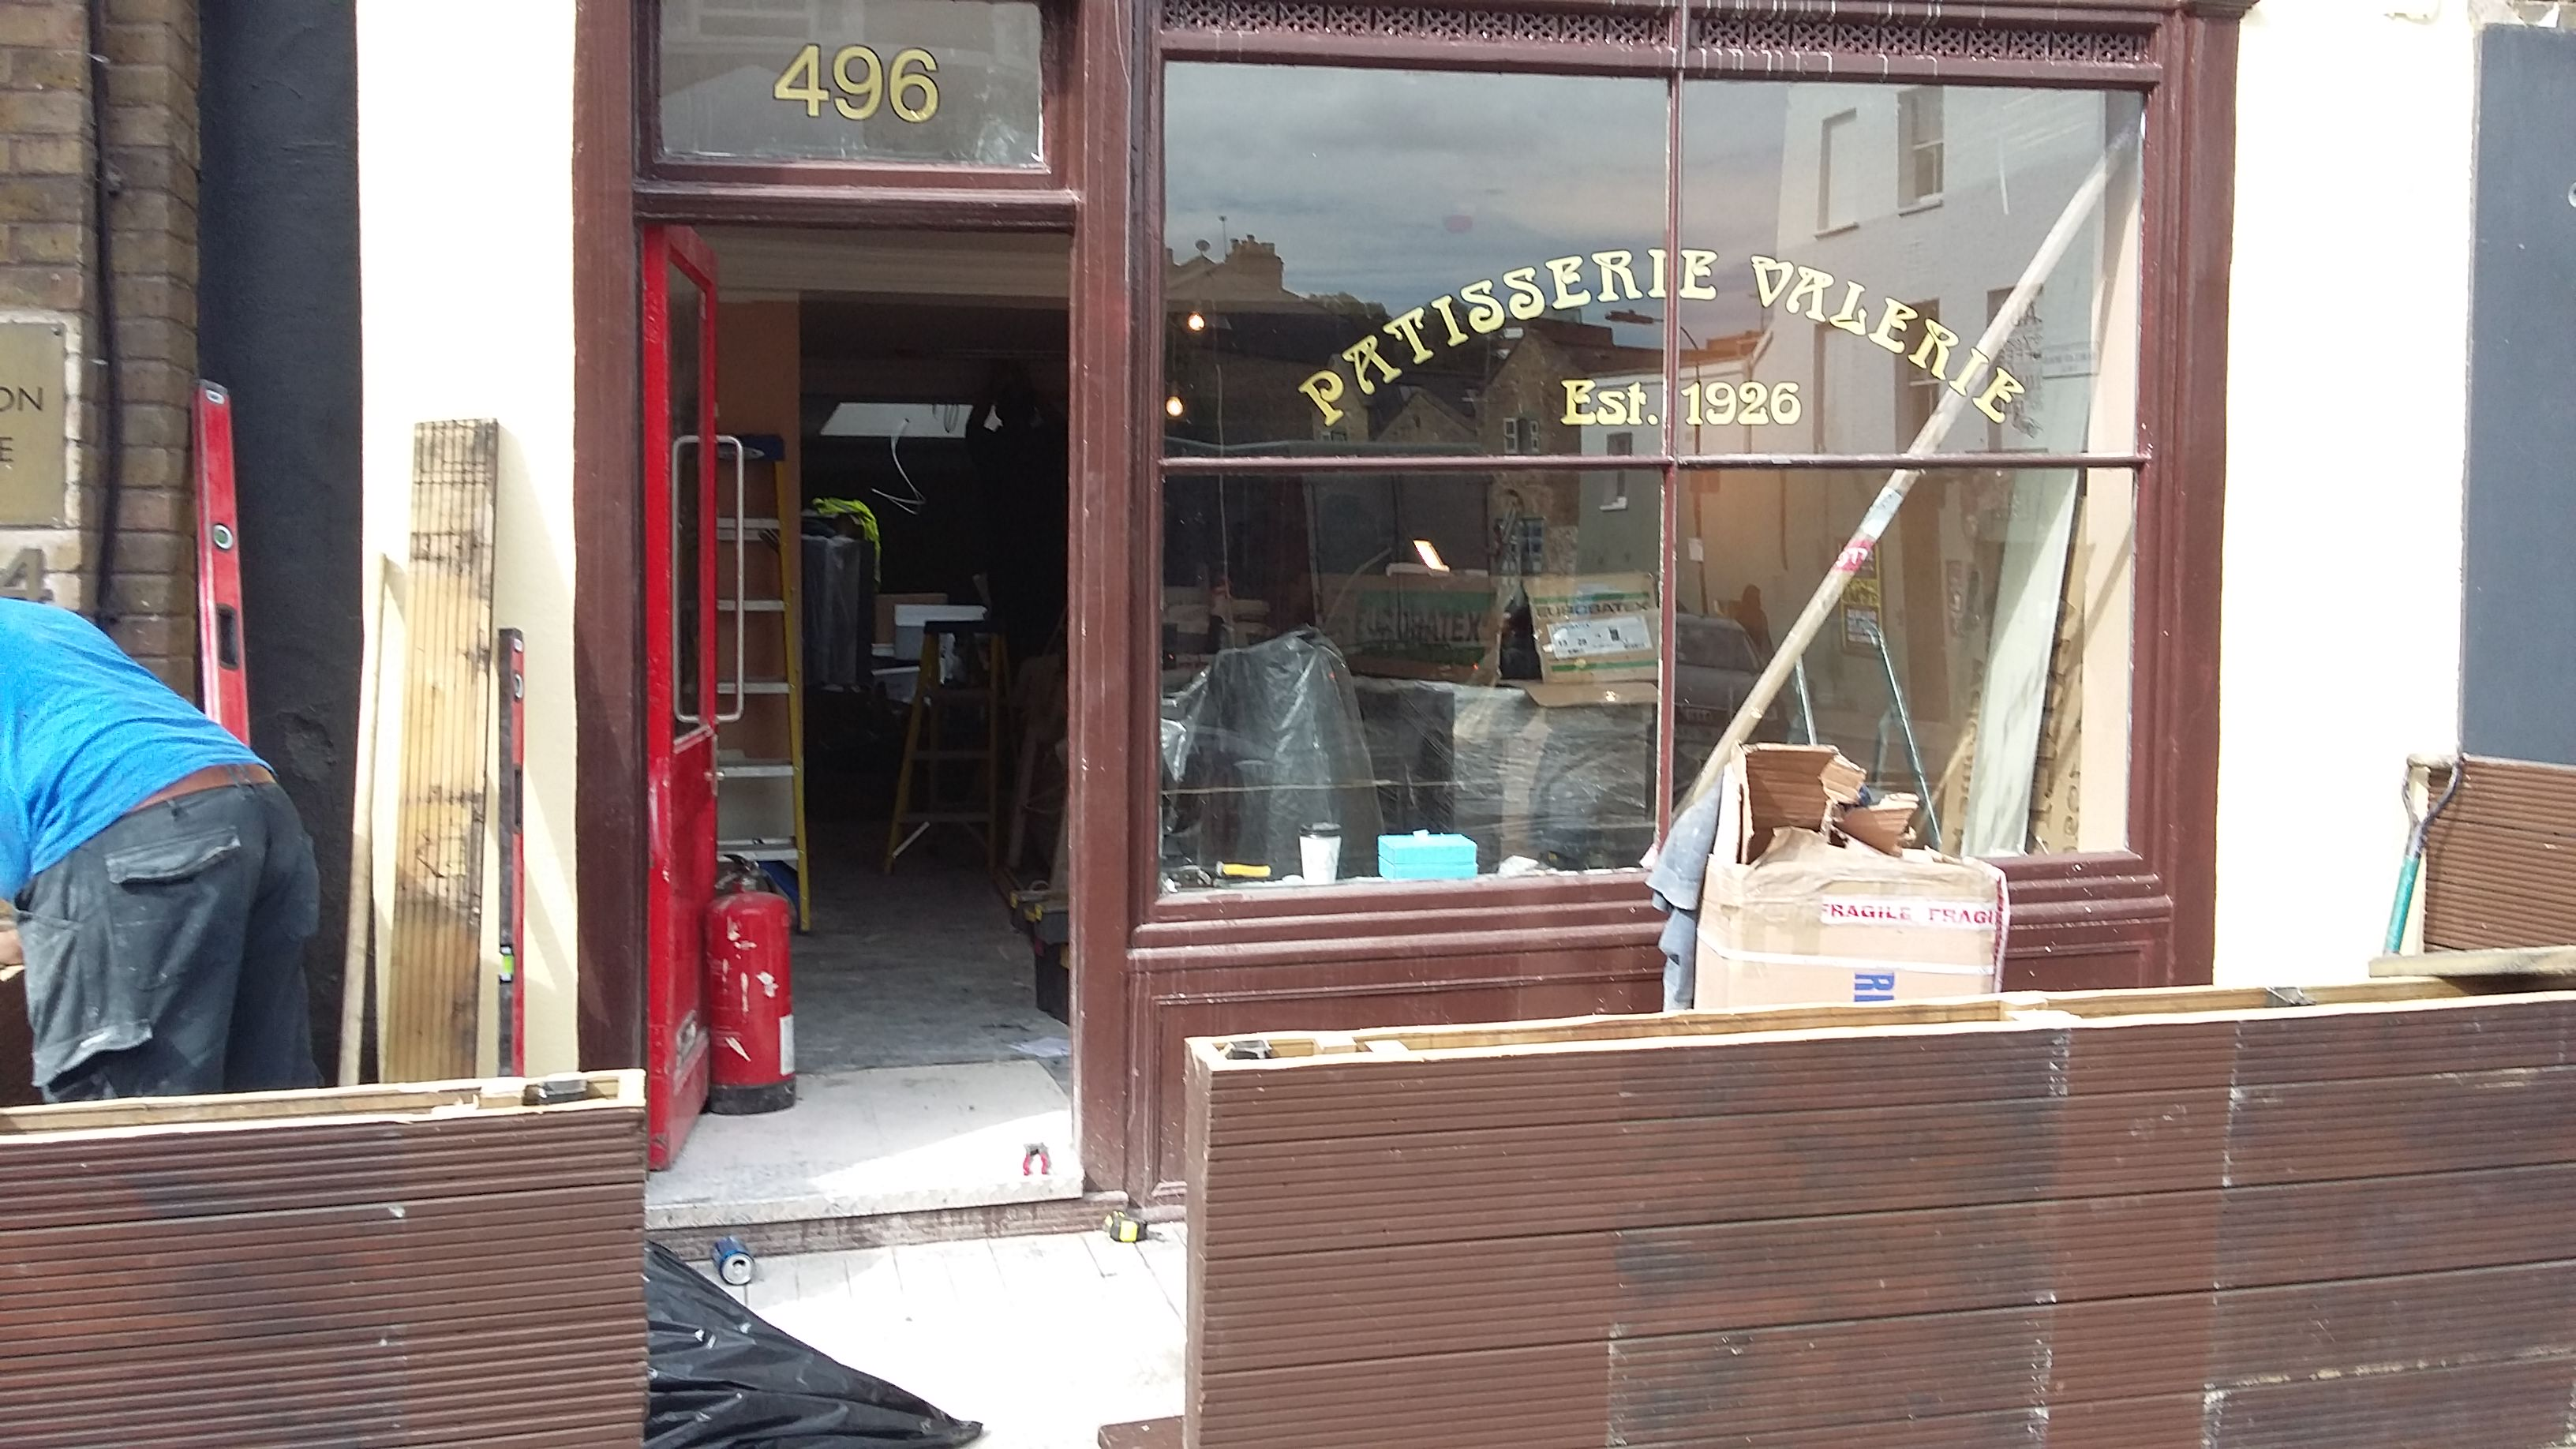 Shop Fitter Patisserie Valerie17